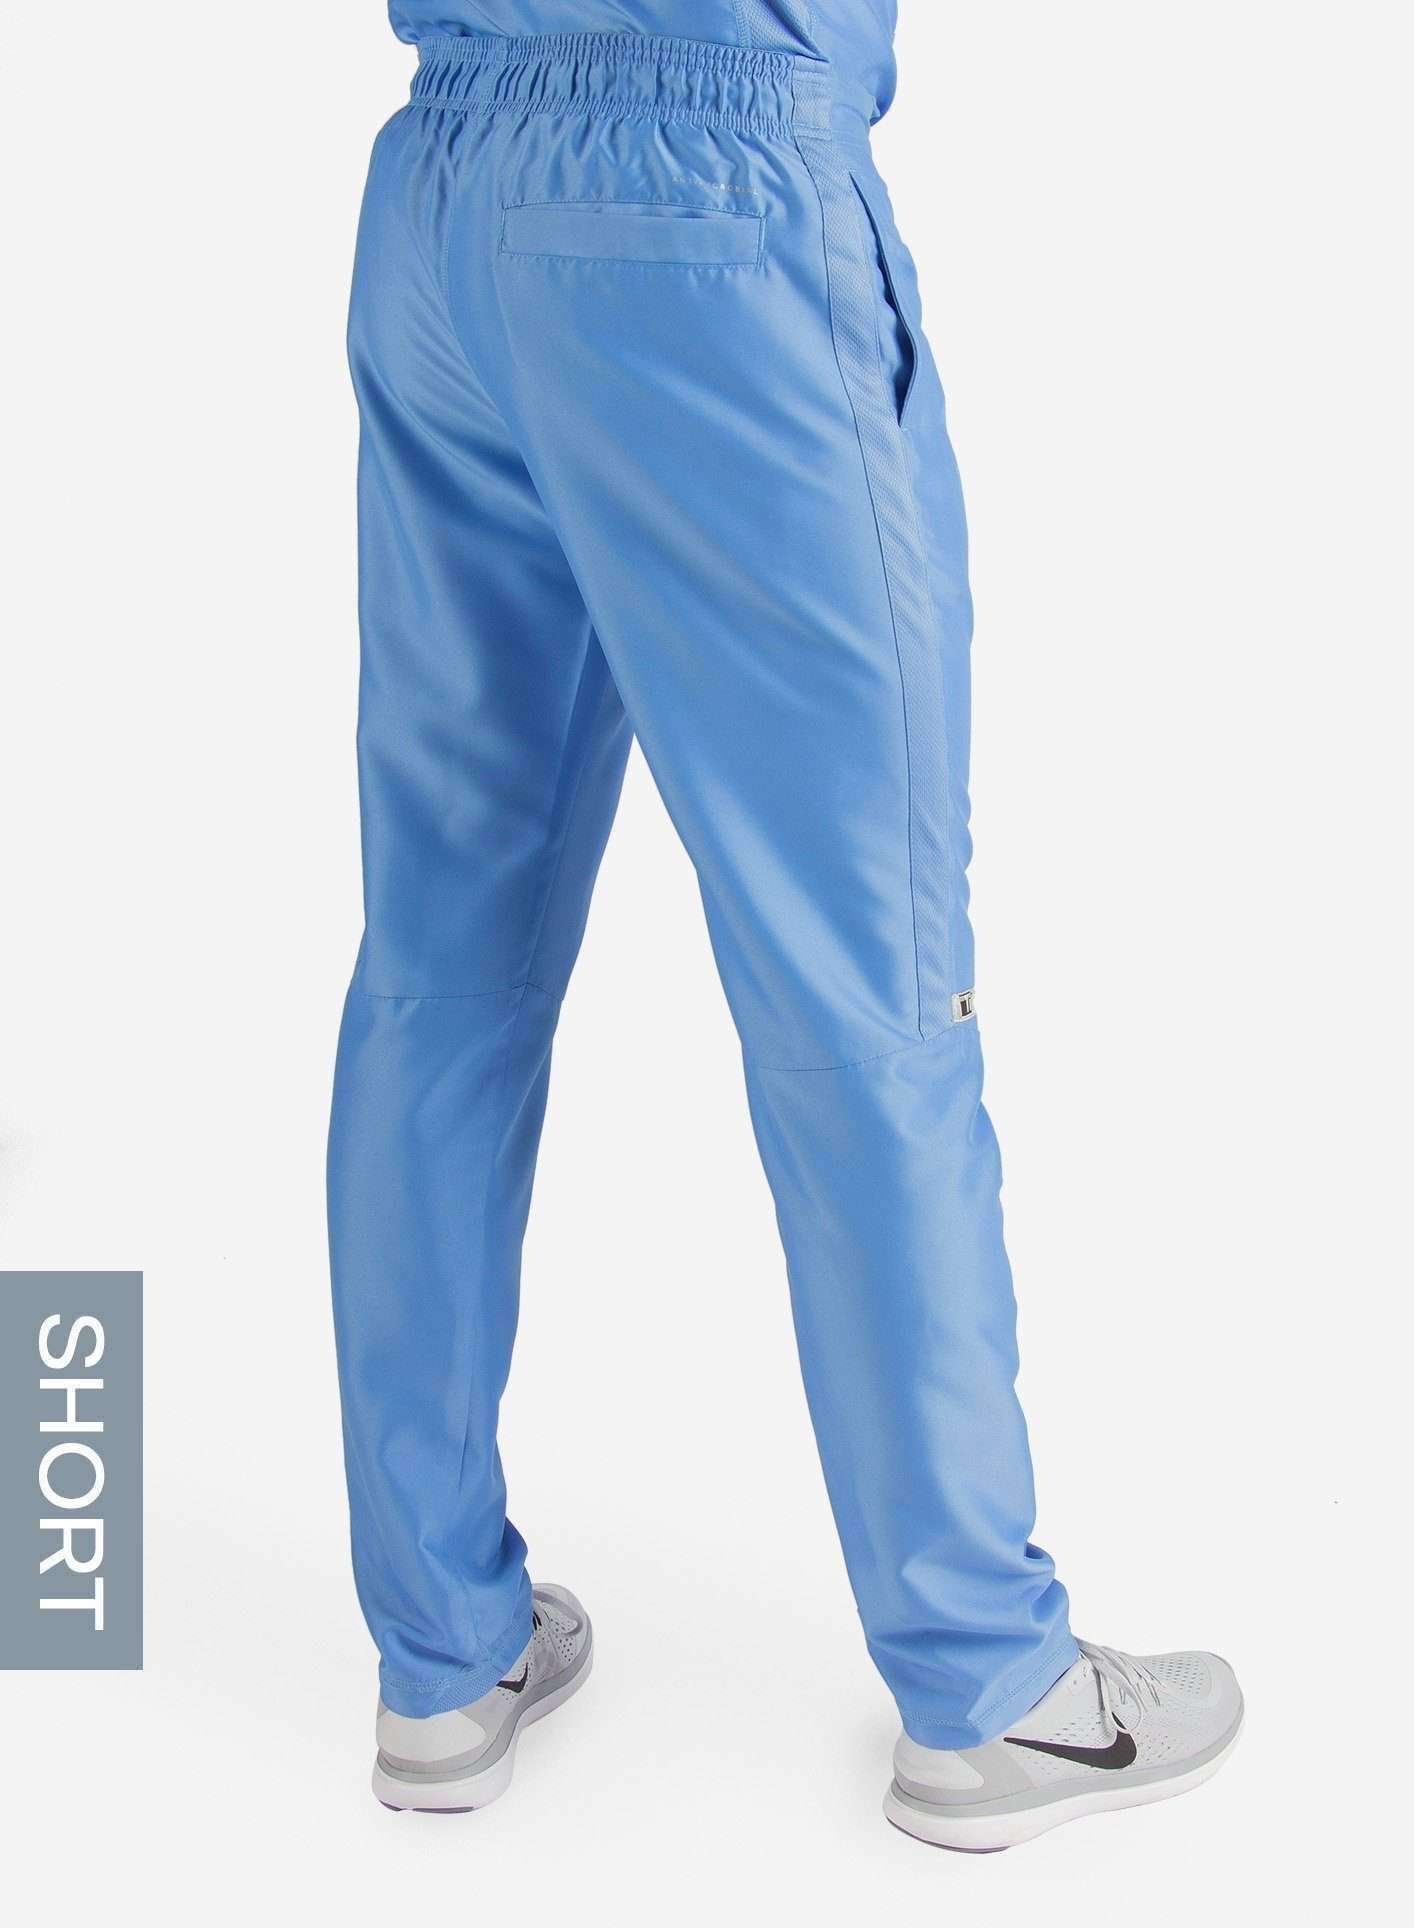 Men's Short Slim Fit Scrub Pants in Ceil Blue Back View